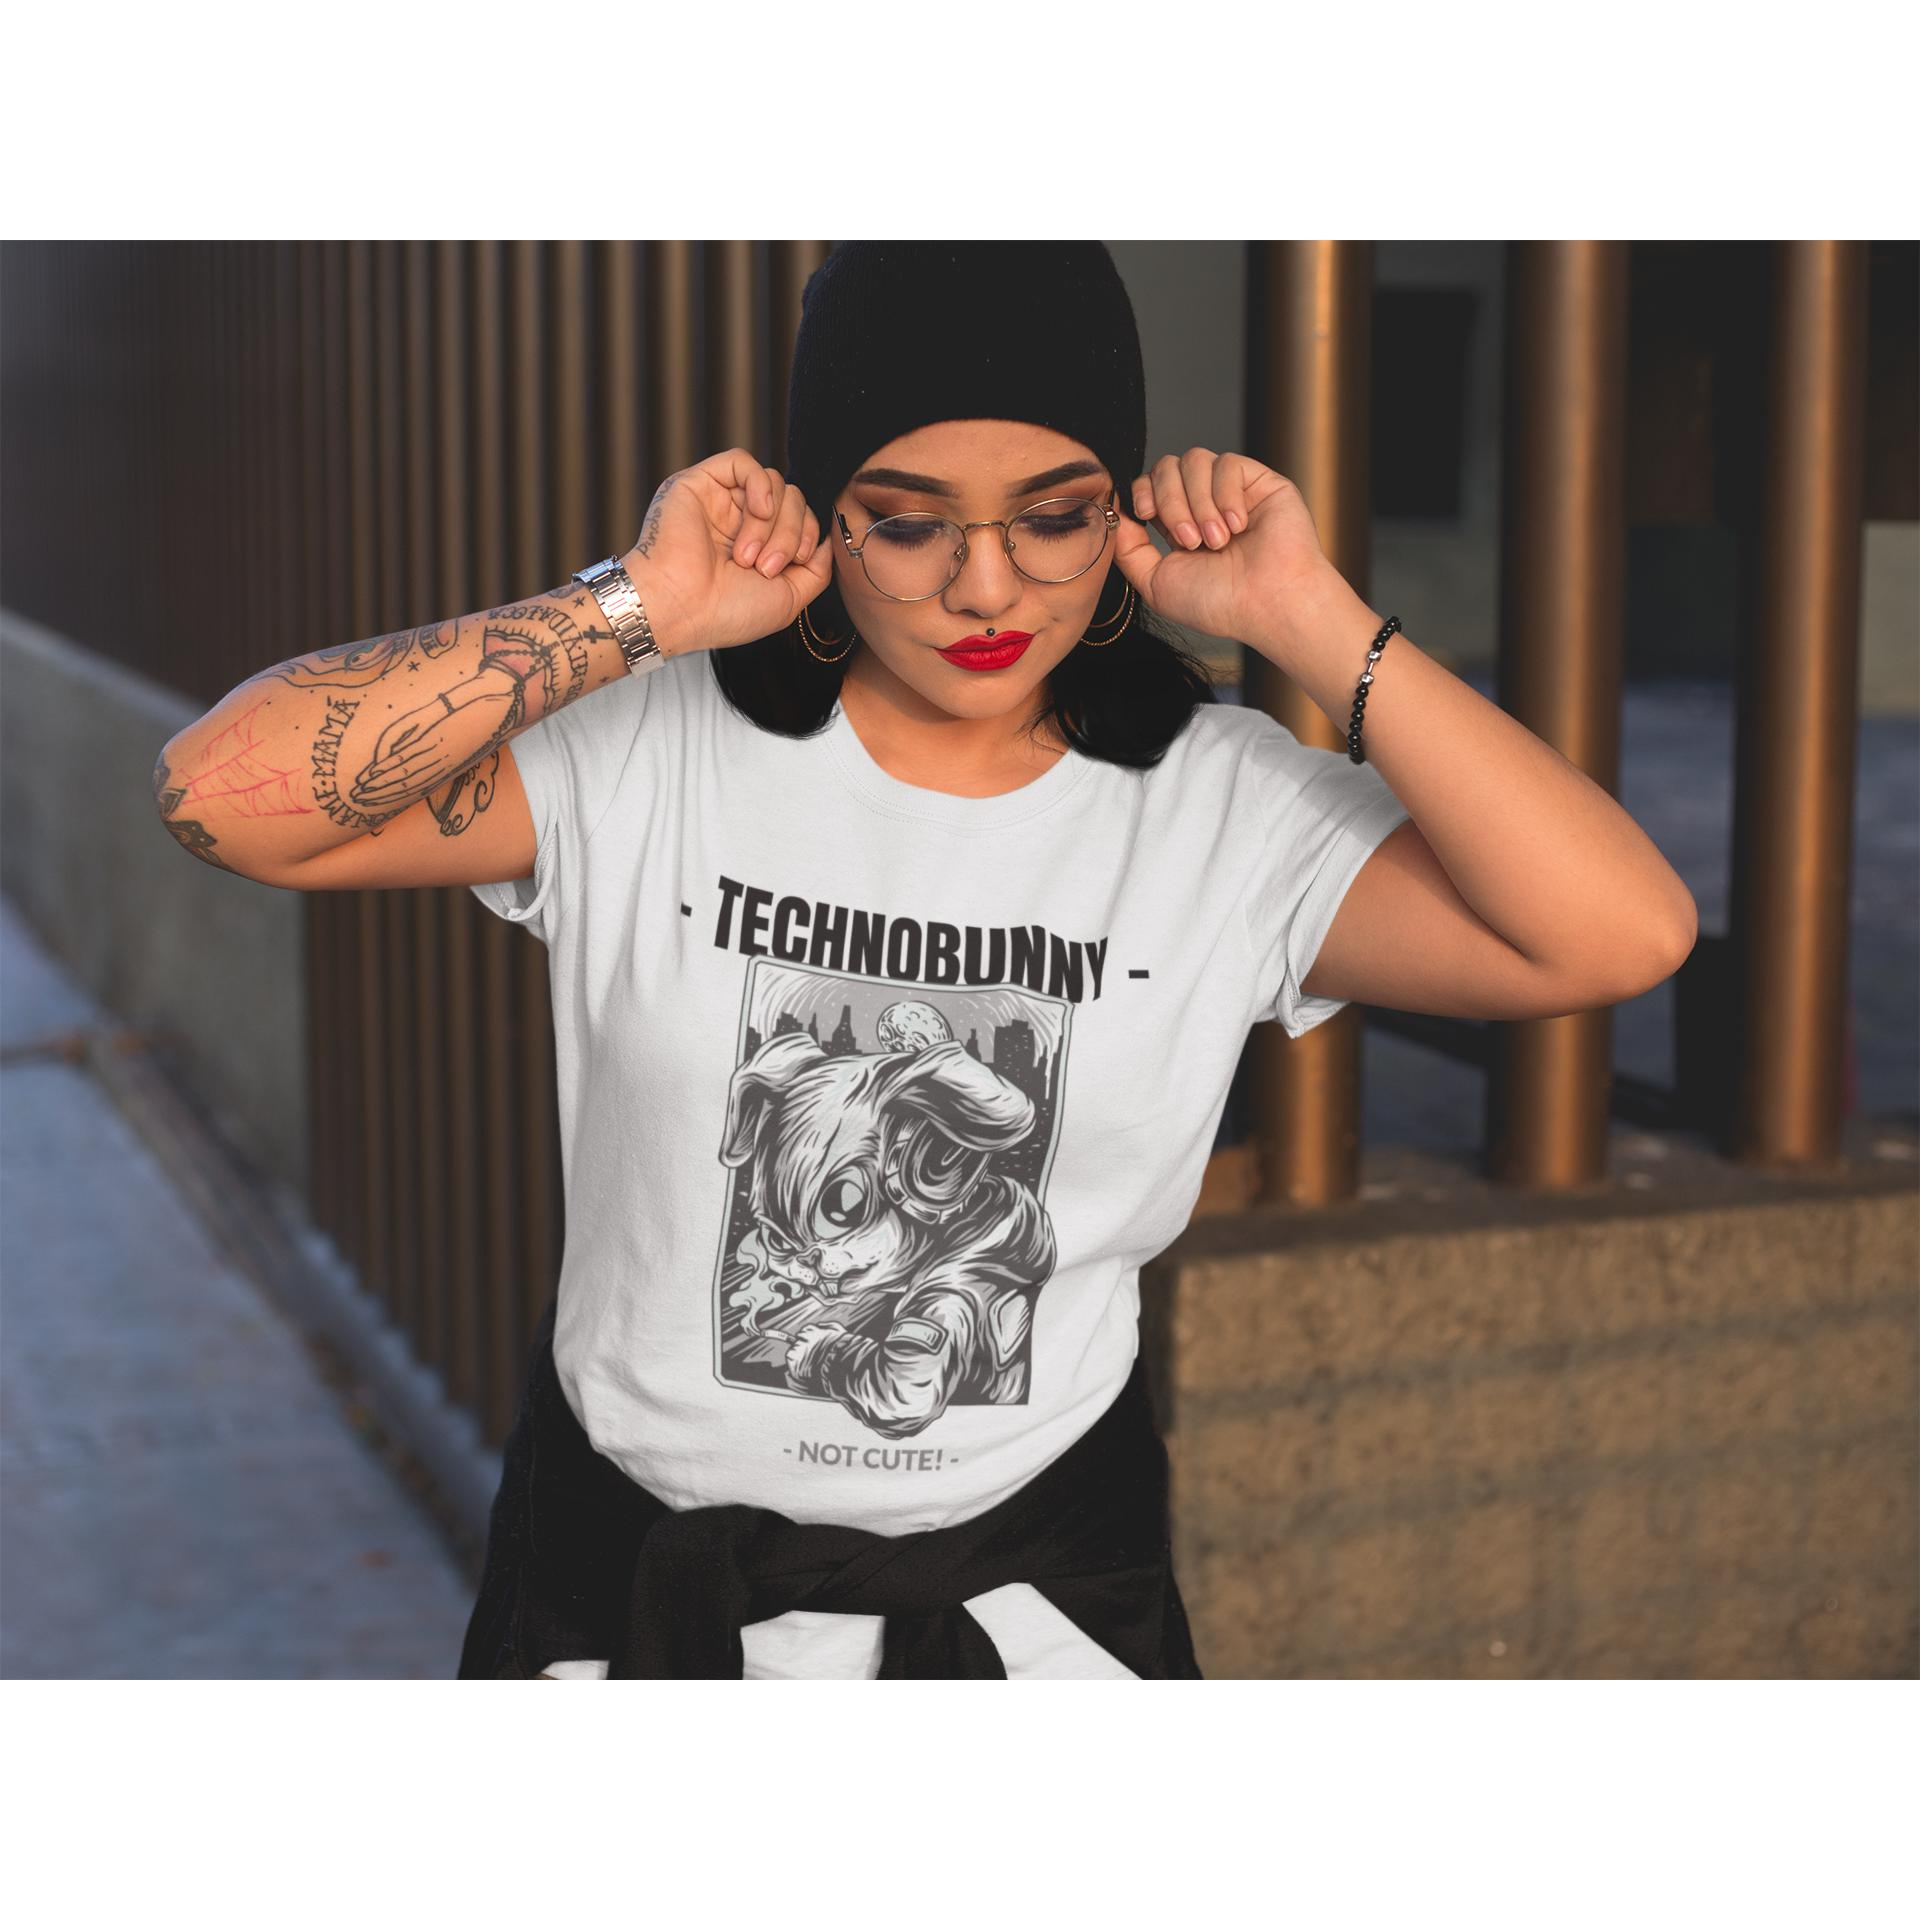 TECHNOBUNNY - Not Cute! - Rave On!® - Damen RollUp Shirt Women Rollup Shirt - Rave On!® der Club & Techno Szene Shop für Coole Junge Mode Streetwear Style & Fashion Outfits + Sexy Festival 420 Stuff